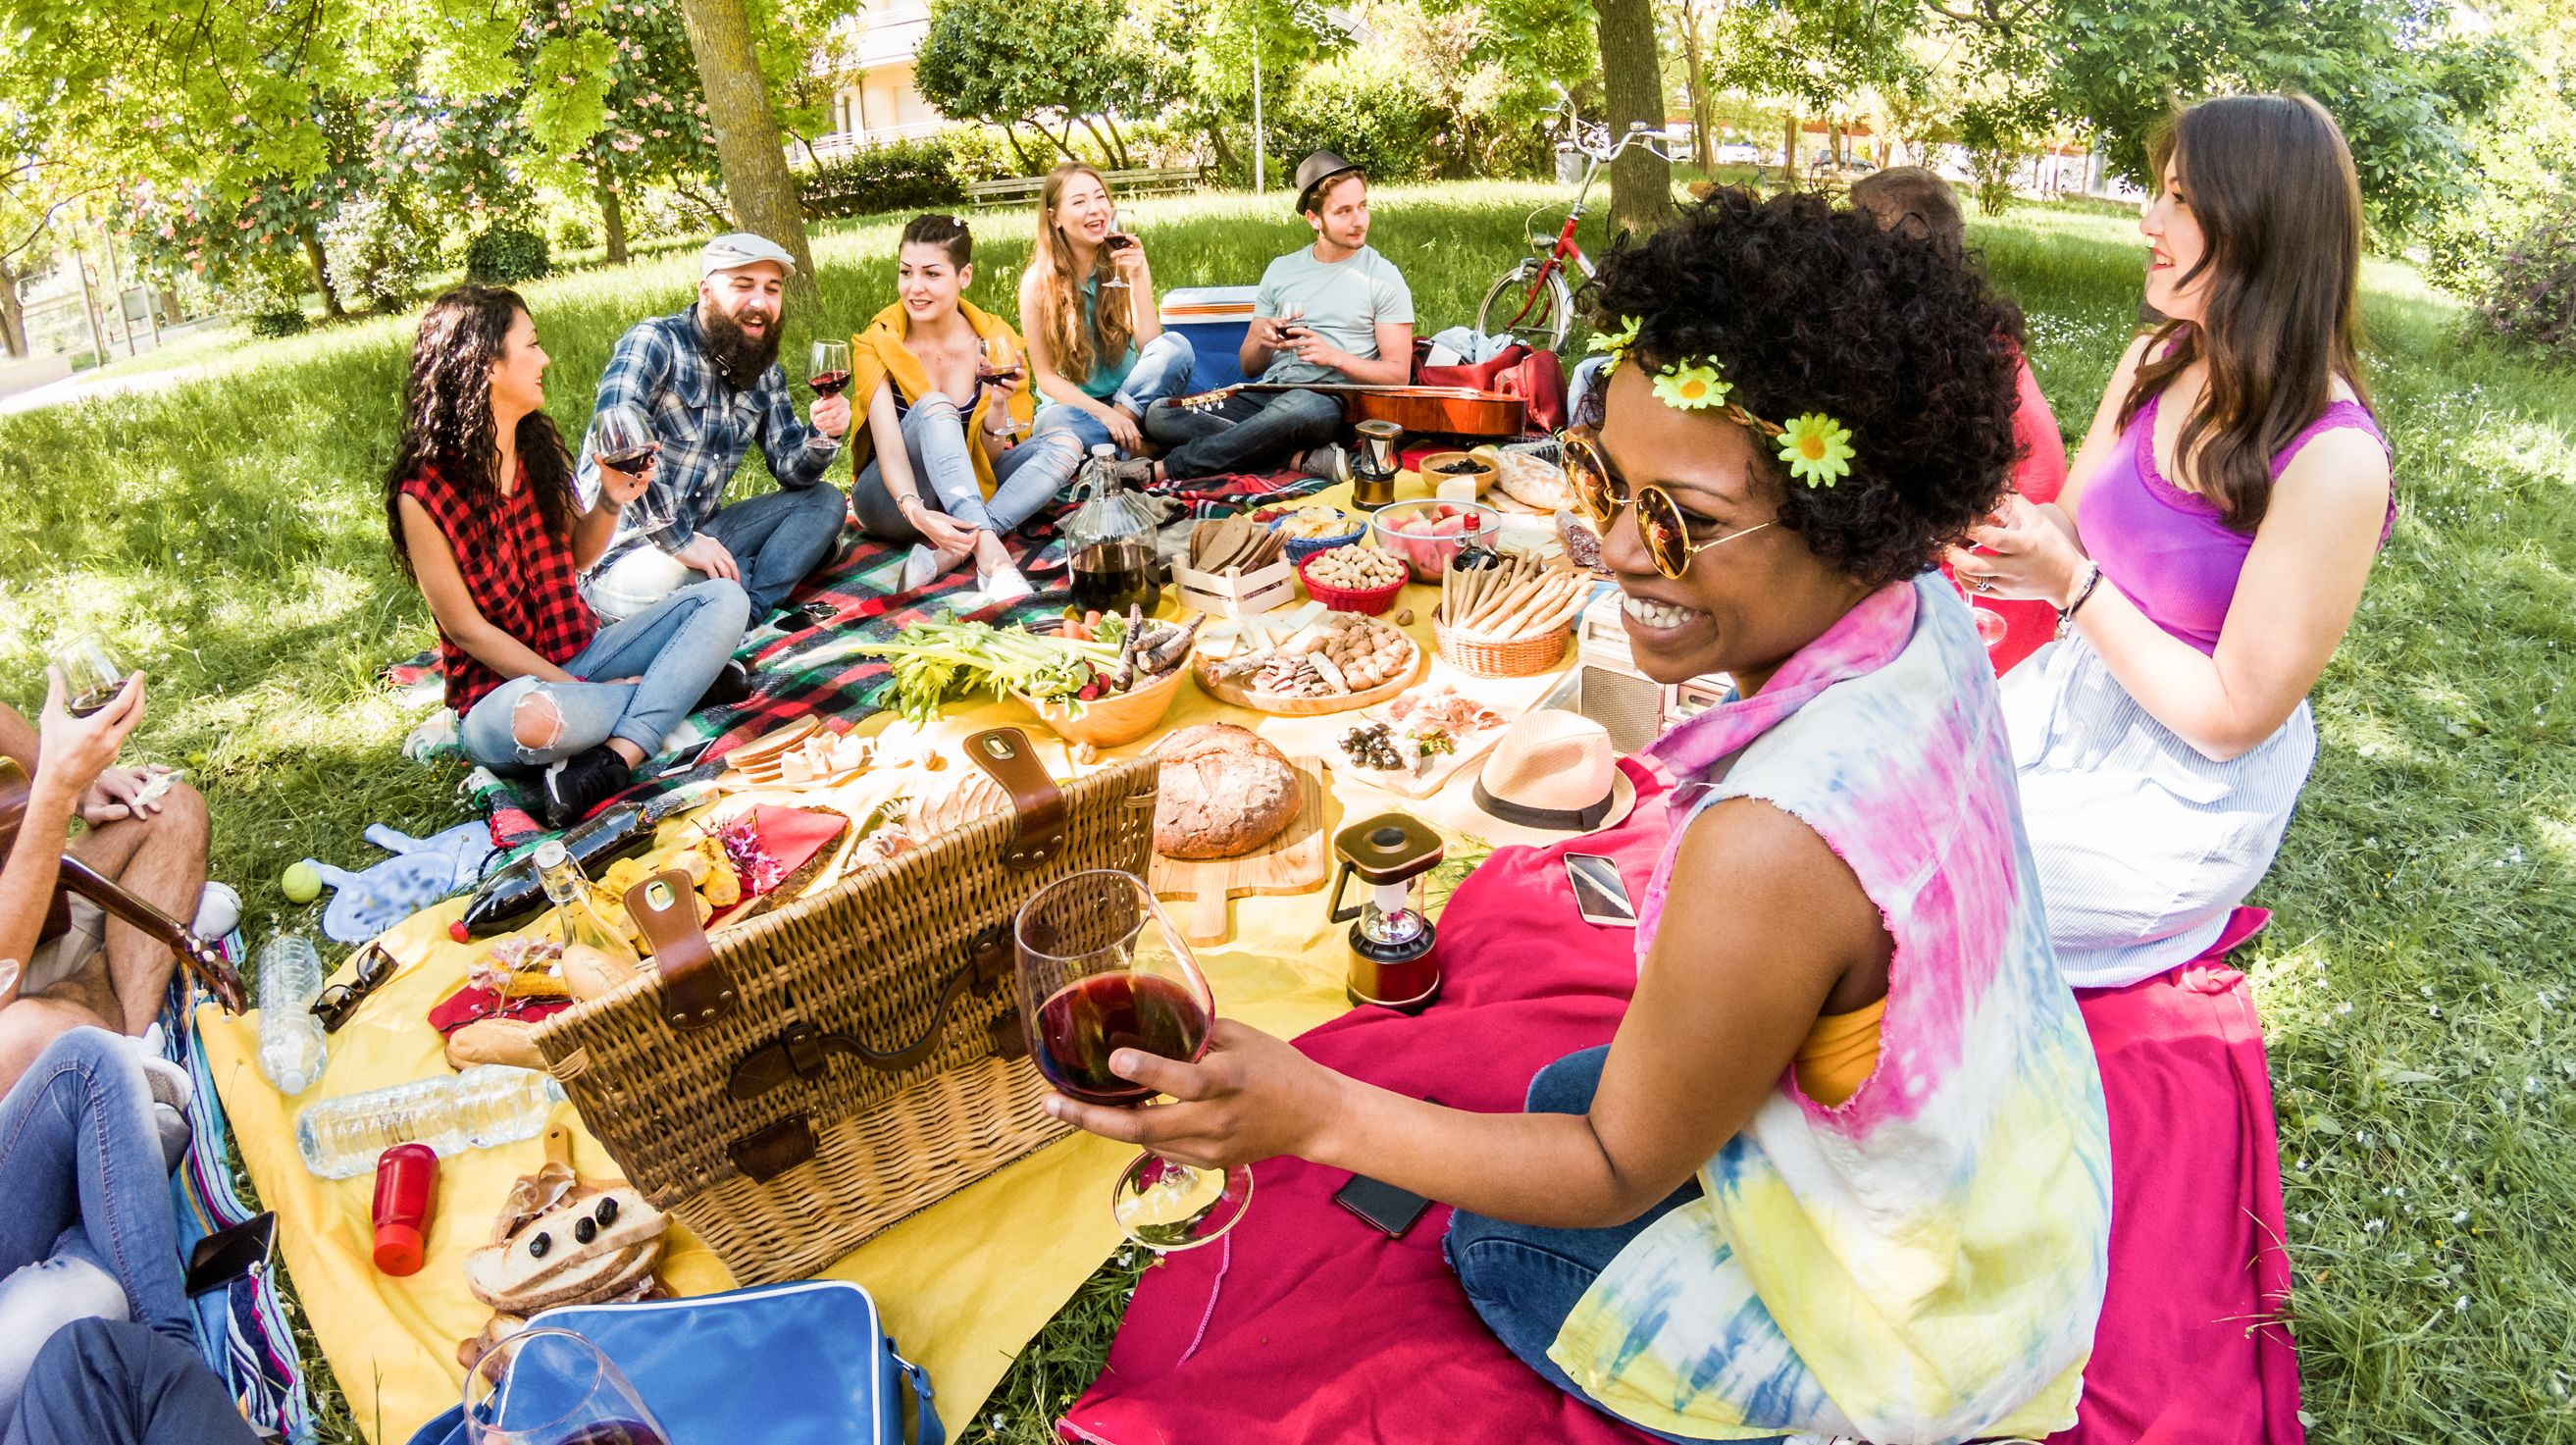 15 Essentials To Pack For Any Picnic Mental Floss